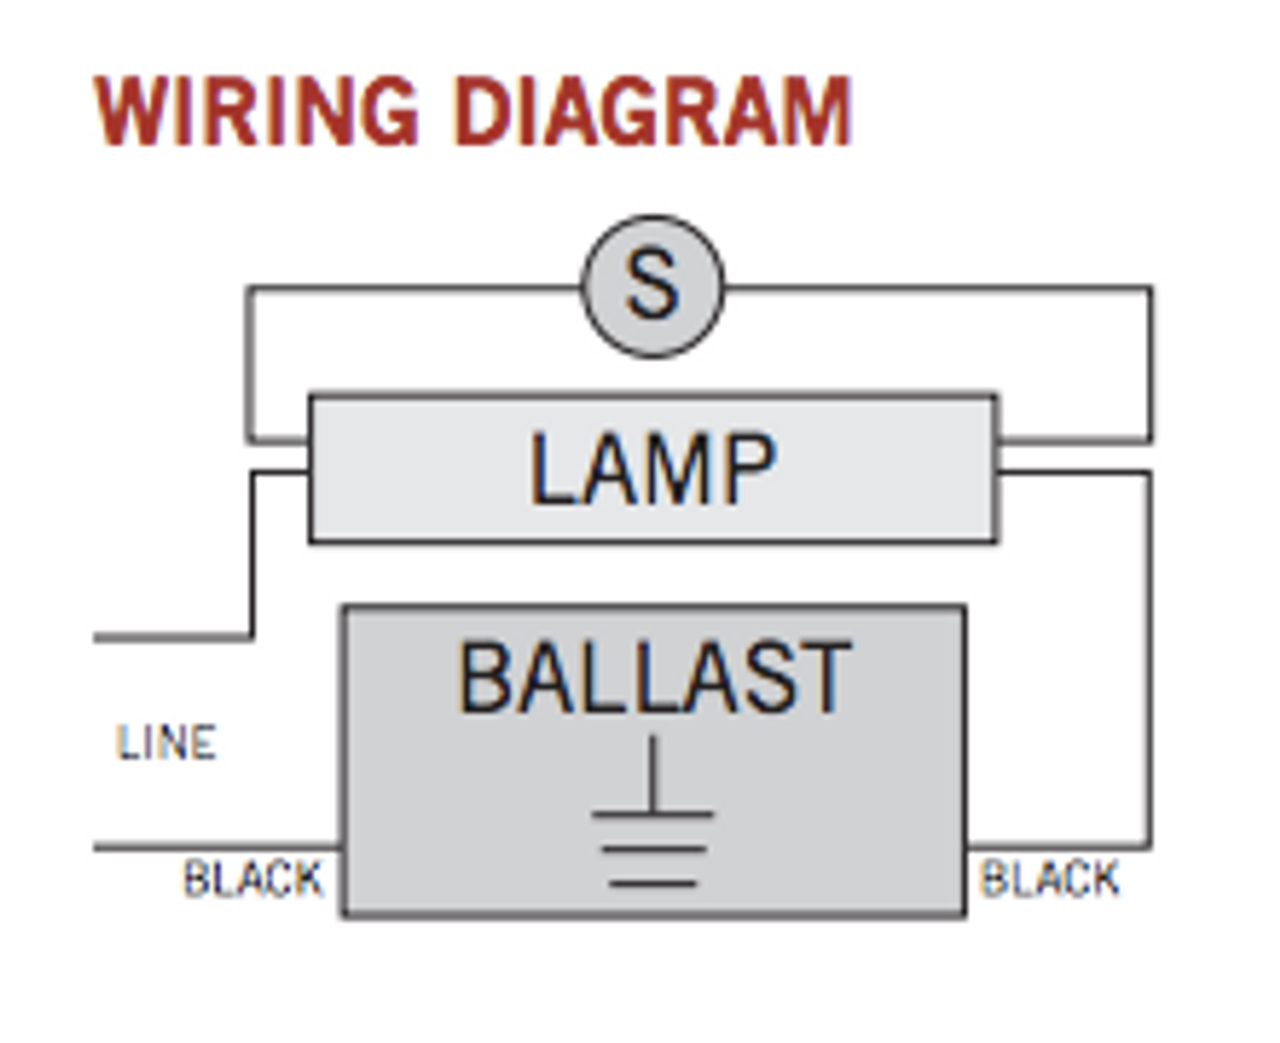 Wiring Diagram For 2 Lamp Ballast